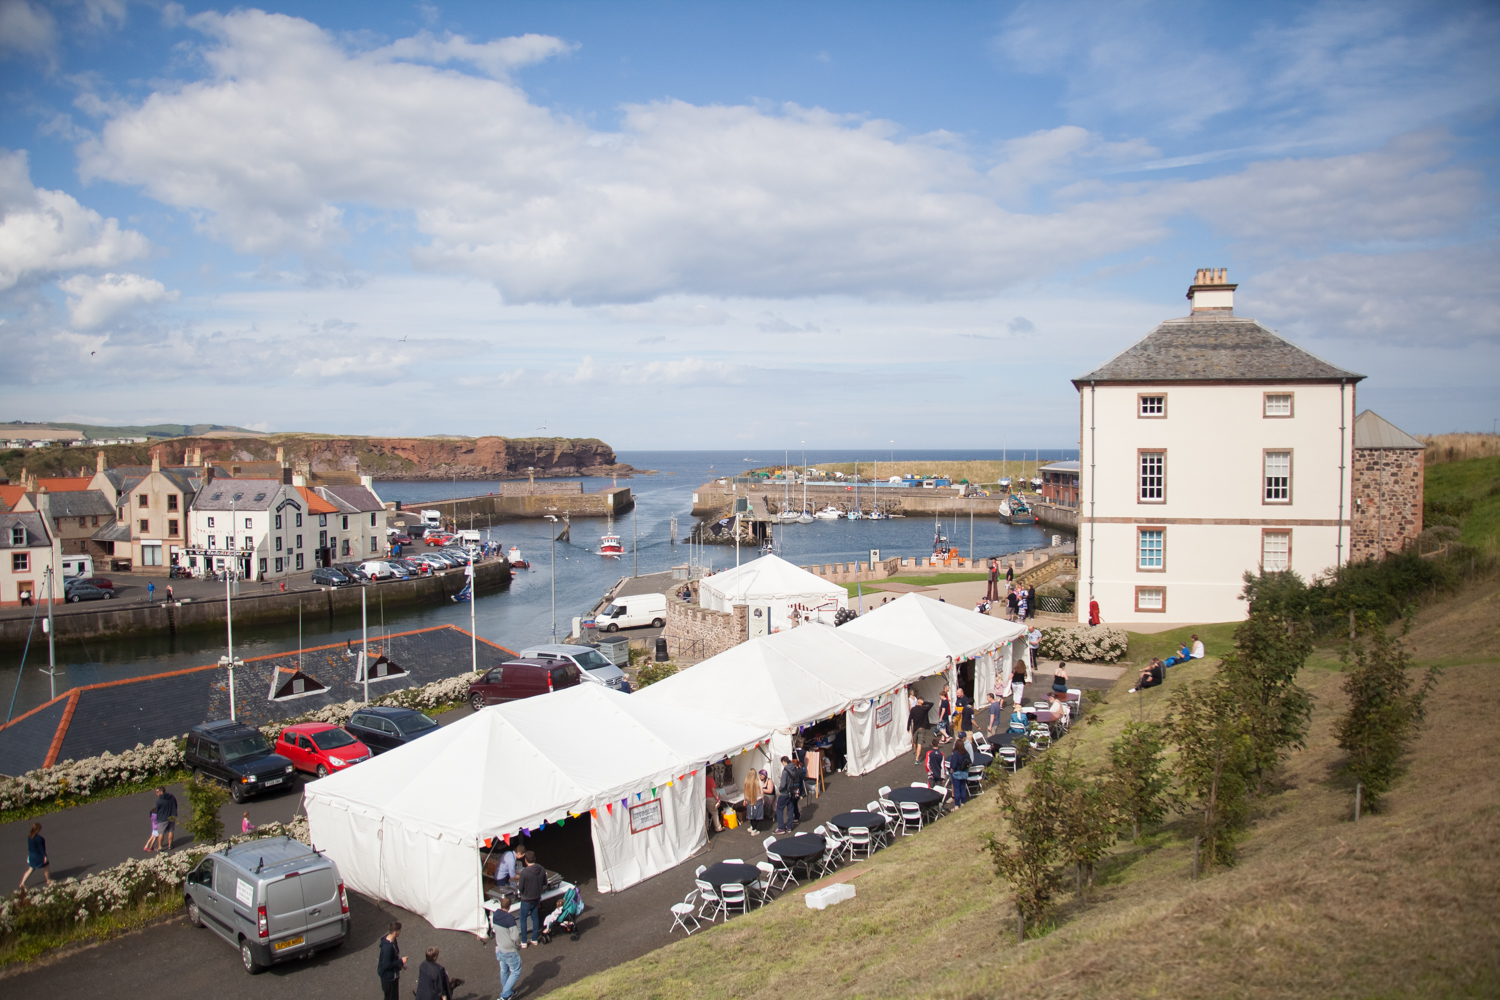 PICTORIAL_BERWICK_eyemouth-gunsgreen-extravaganza-photography-entertainment-party-event-photographer-harbour-gary-dunn-dancers-stilts-performances-speeches-day-out-summer-4521.jpg